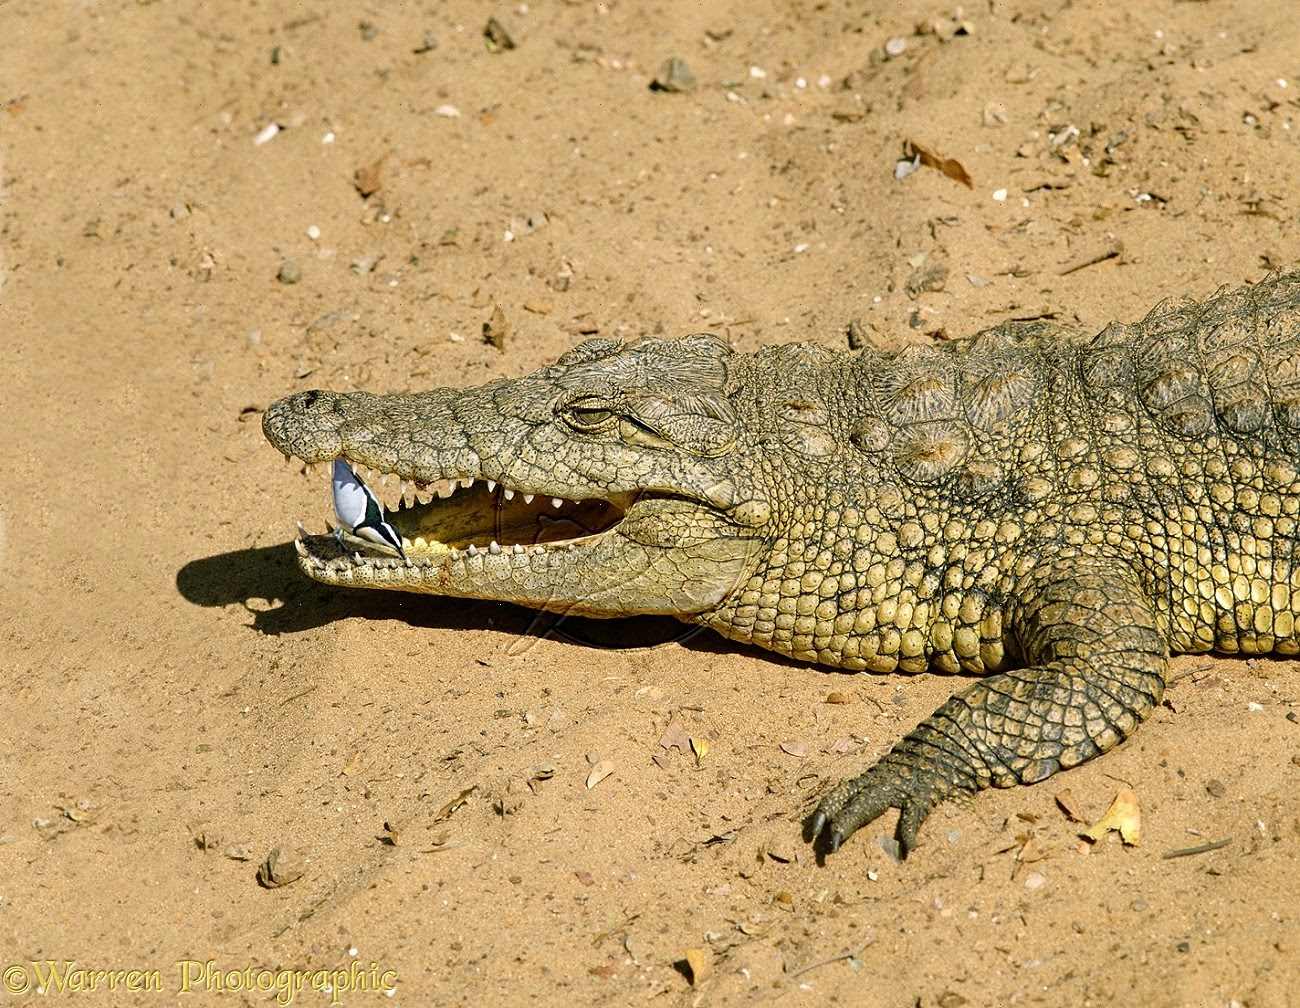 egyptian plover and crocodile relationship questions